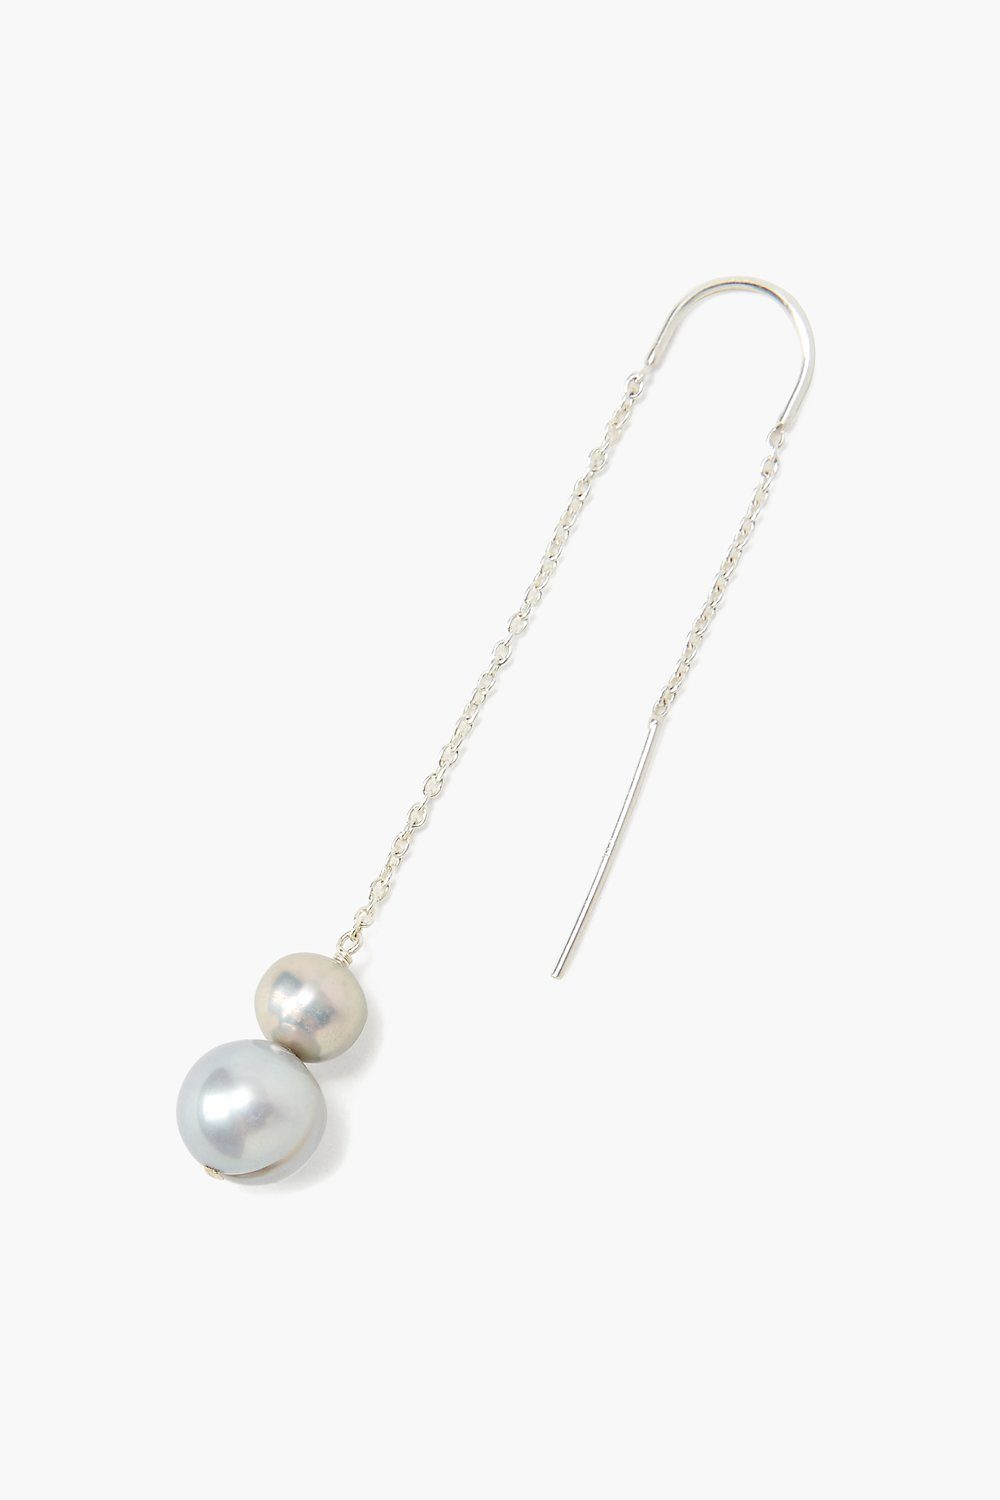 Ombré Grey Pearl Thread-Thru Earrings